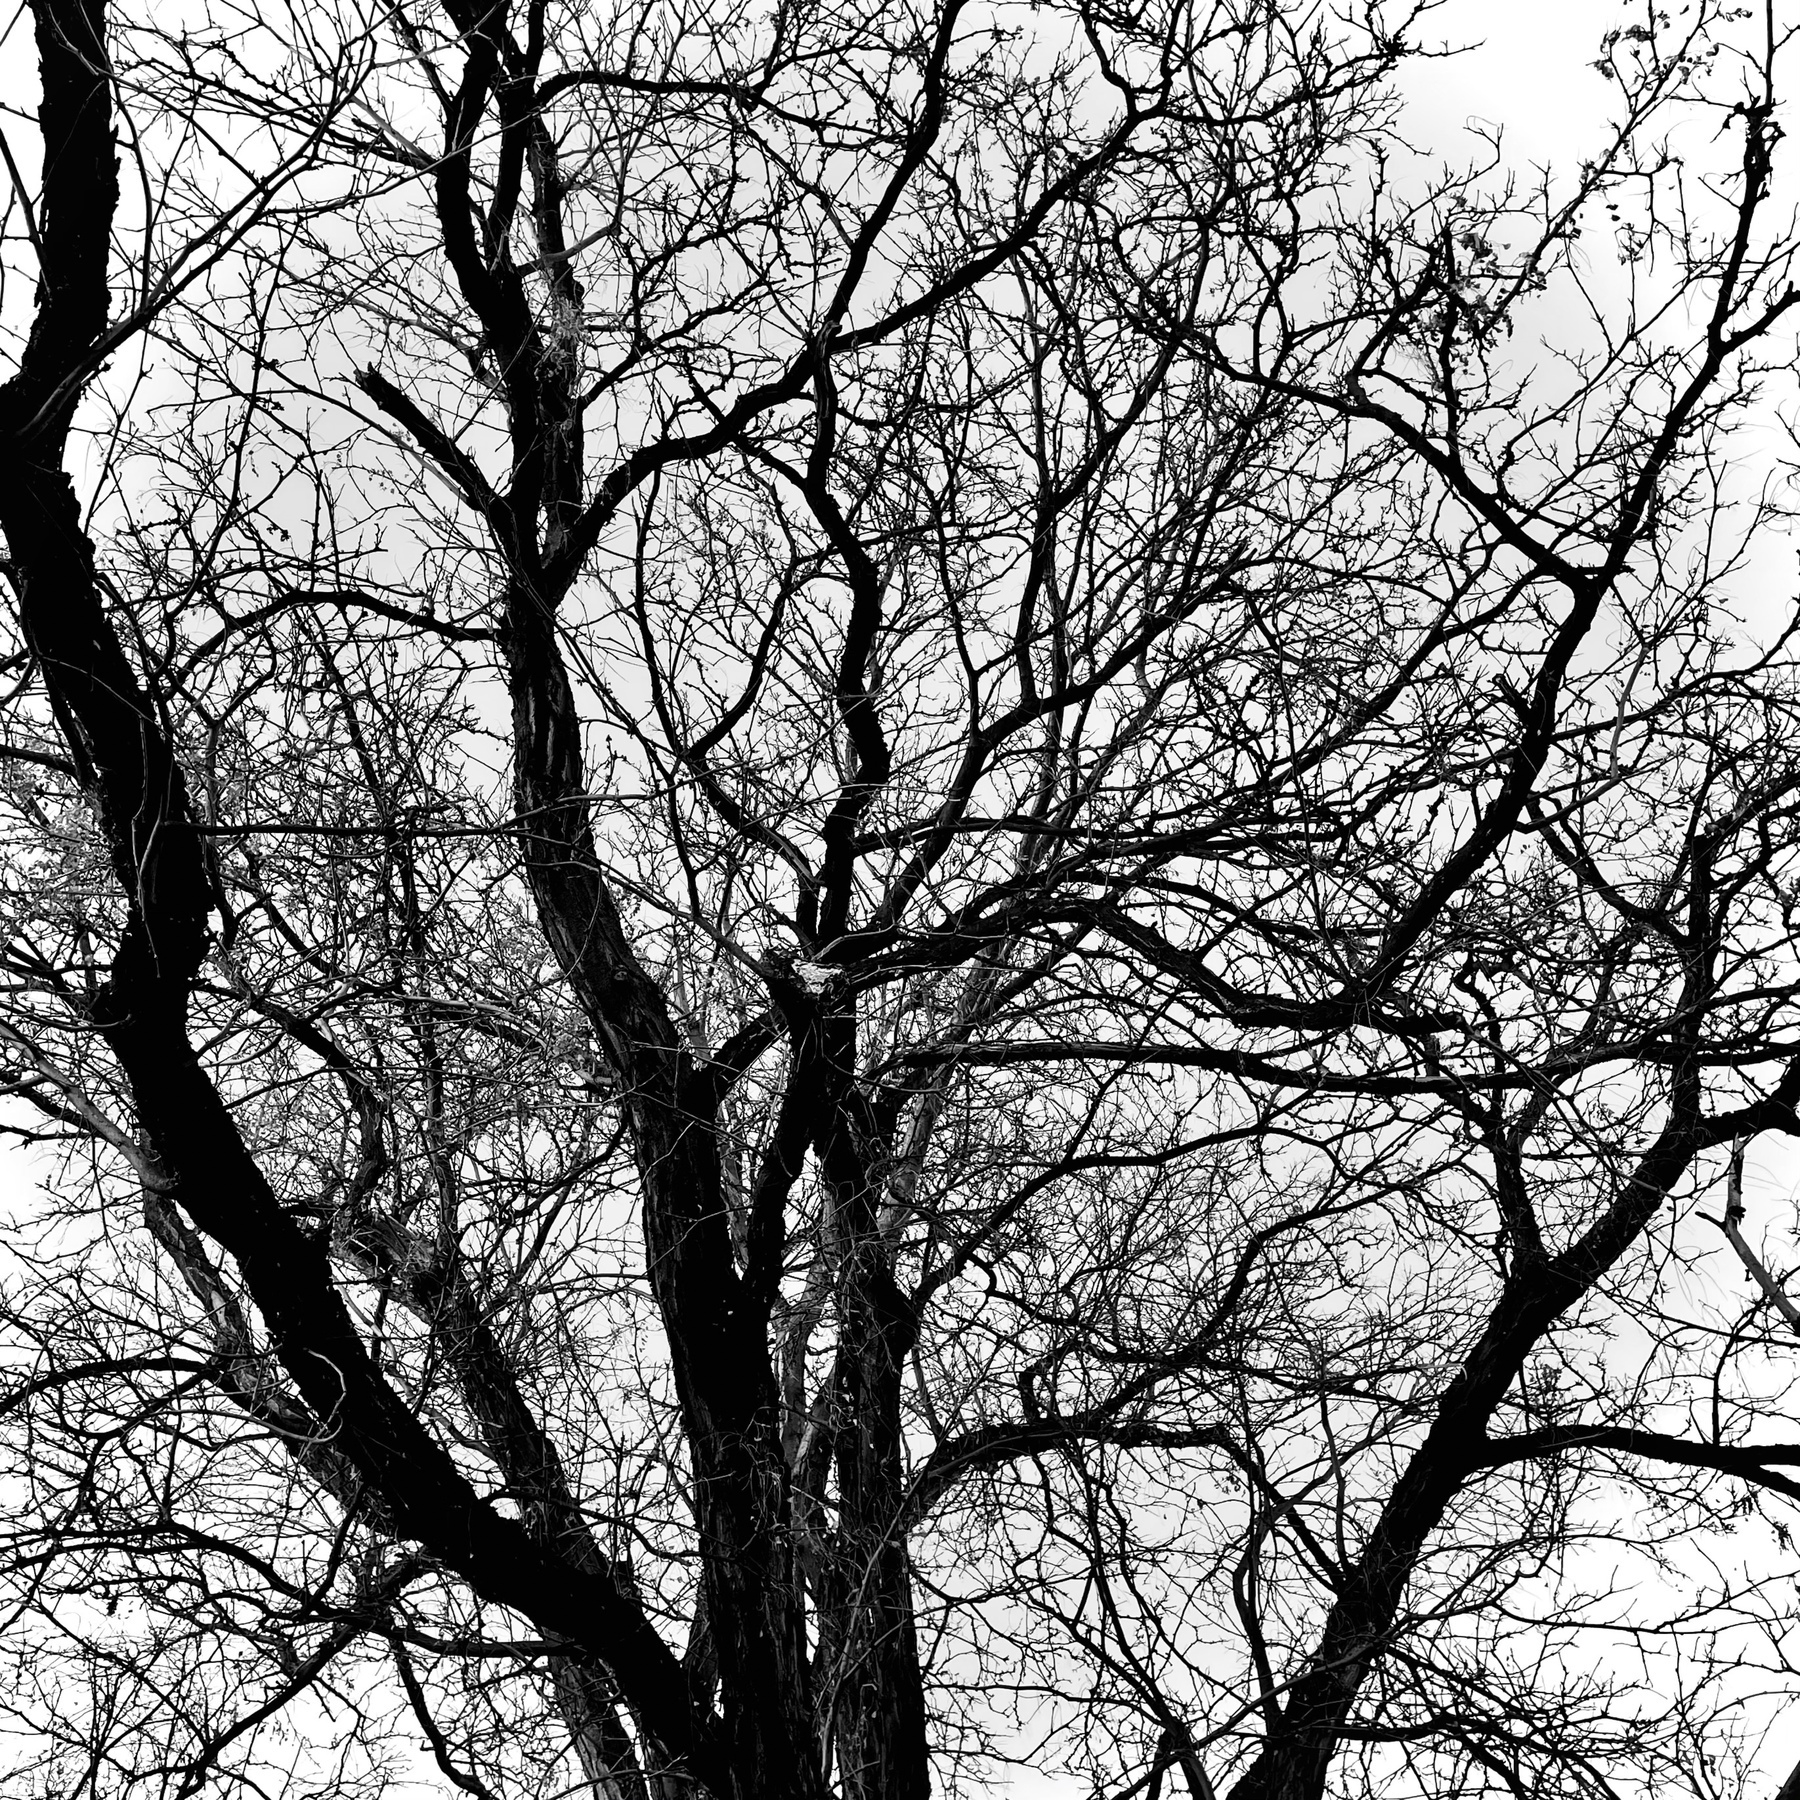 Winter Bare tree against bright sky. Black and White.